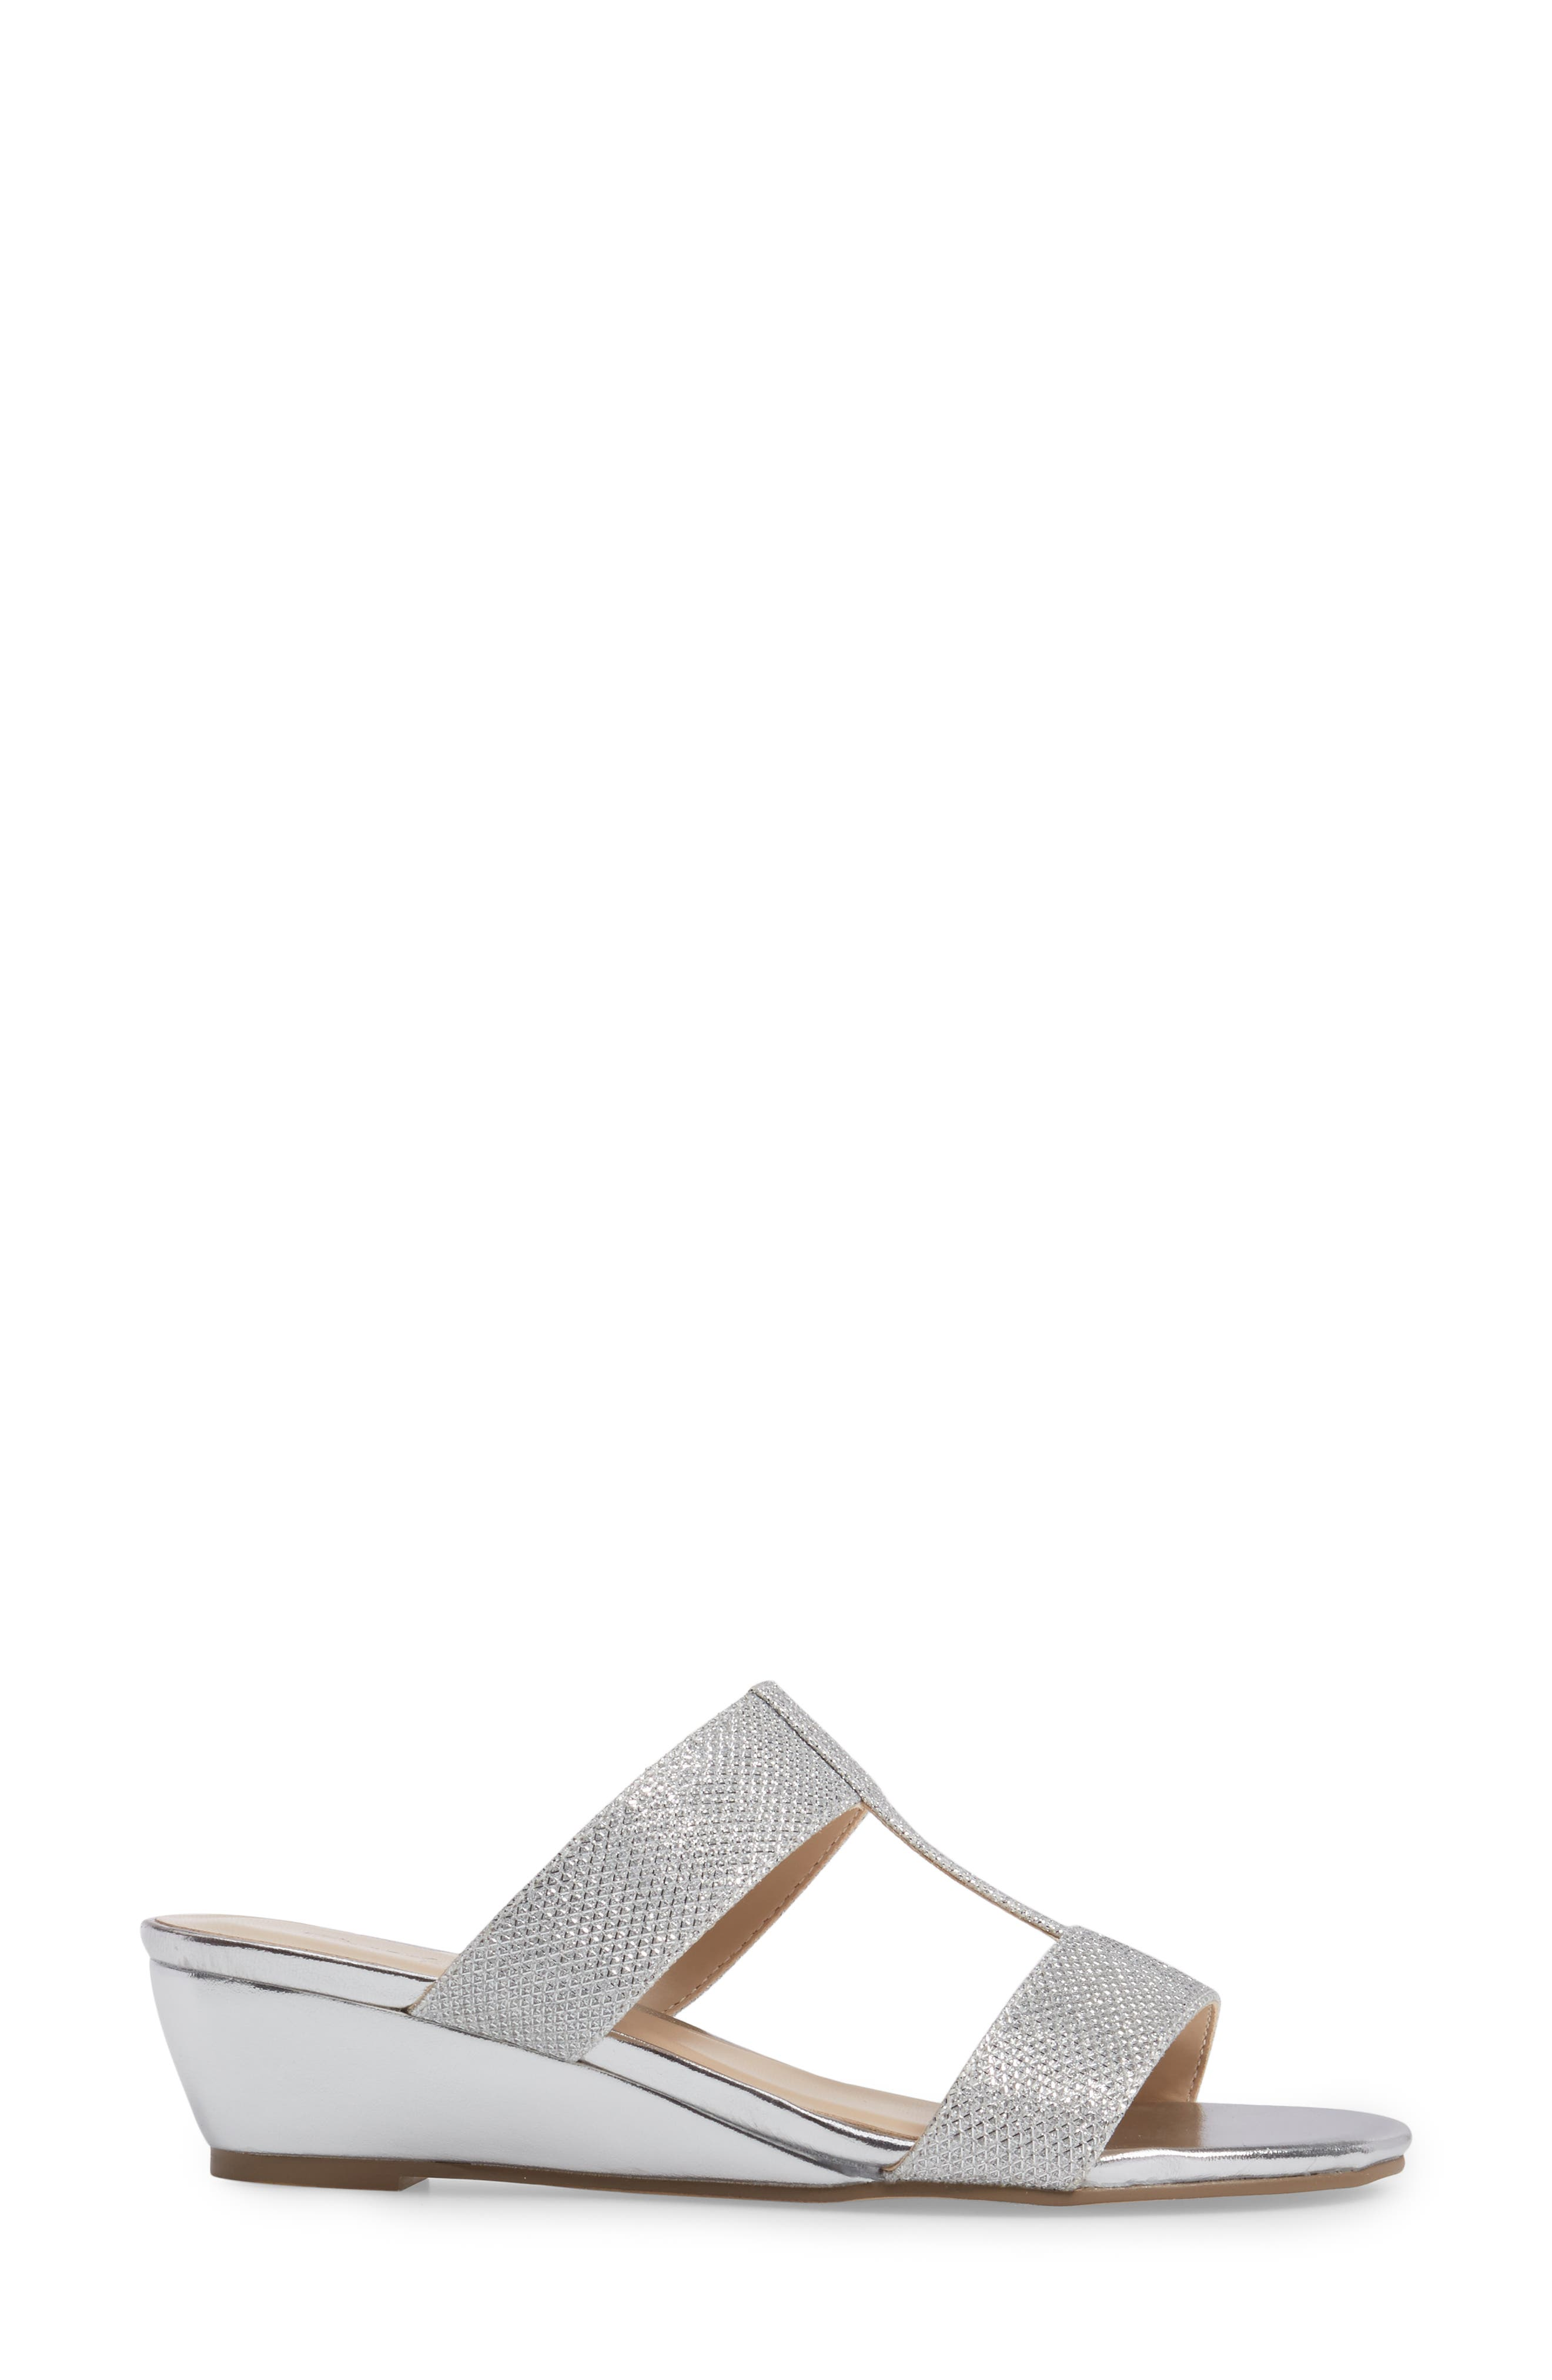 Melina Wedge Slide Sandal,                             Alternate thumbnail 5, color,